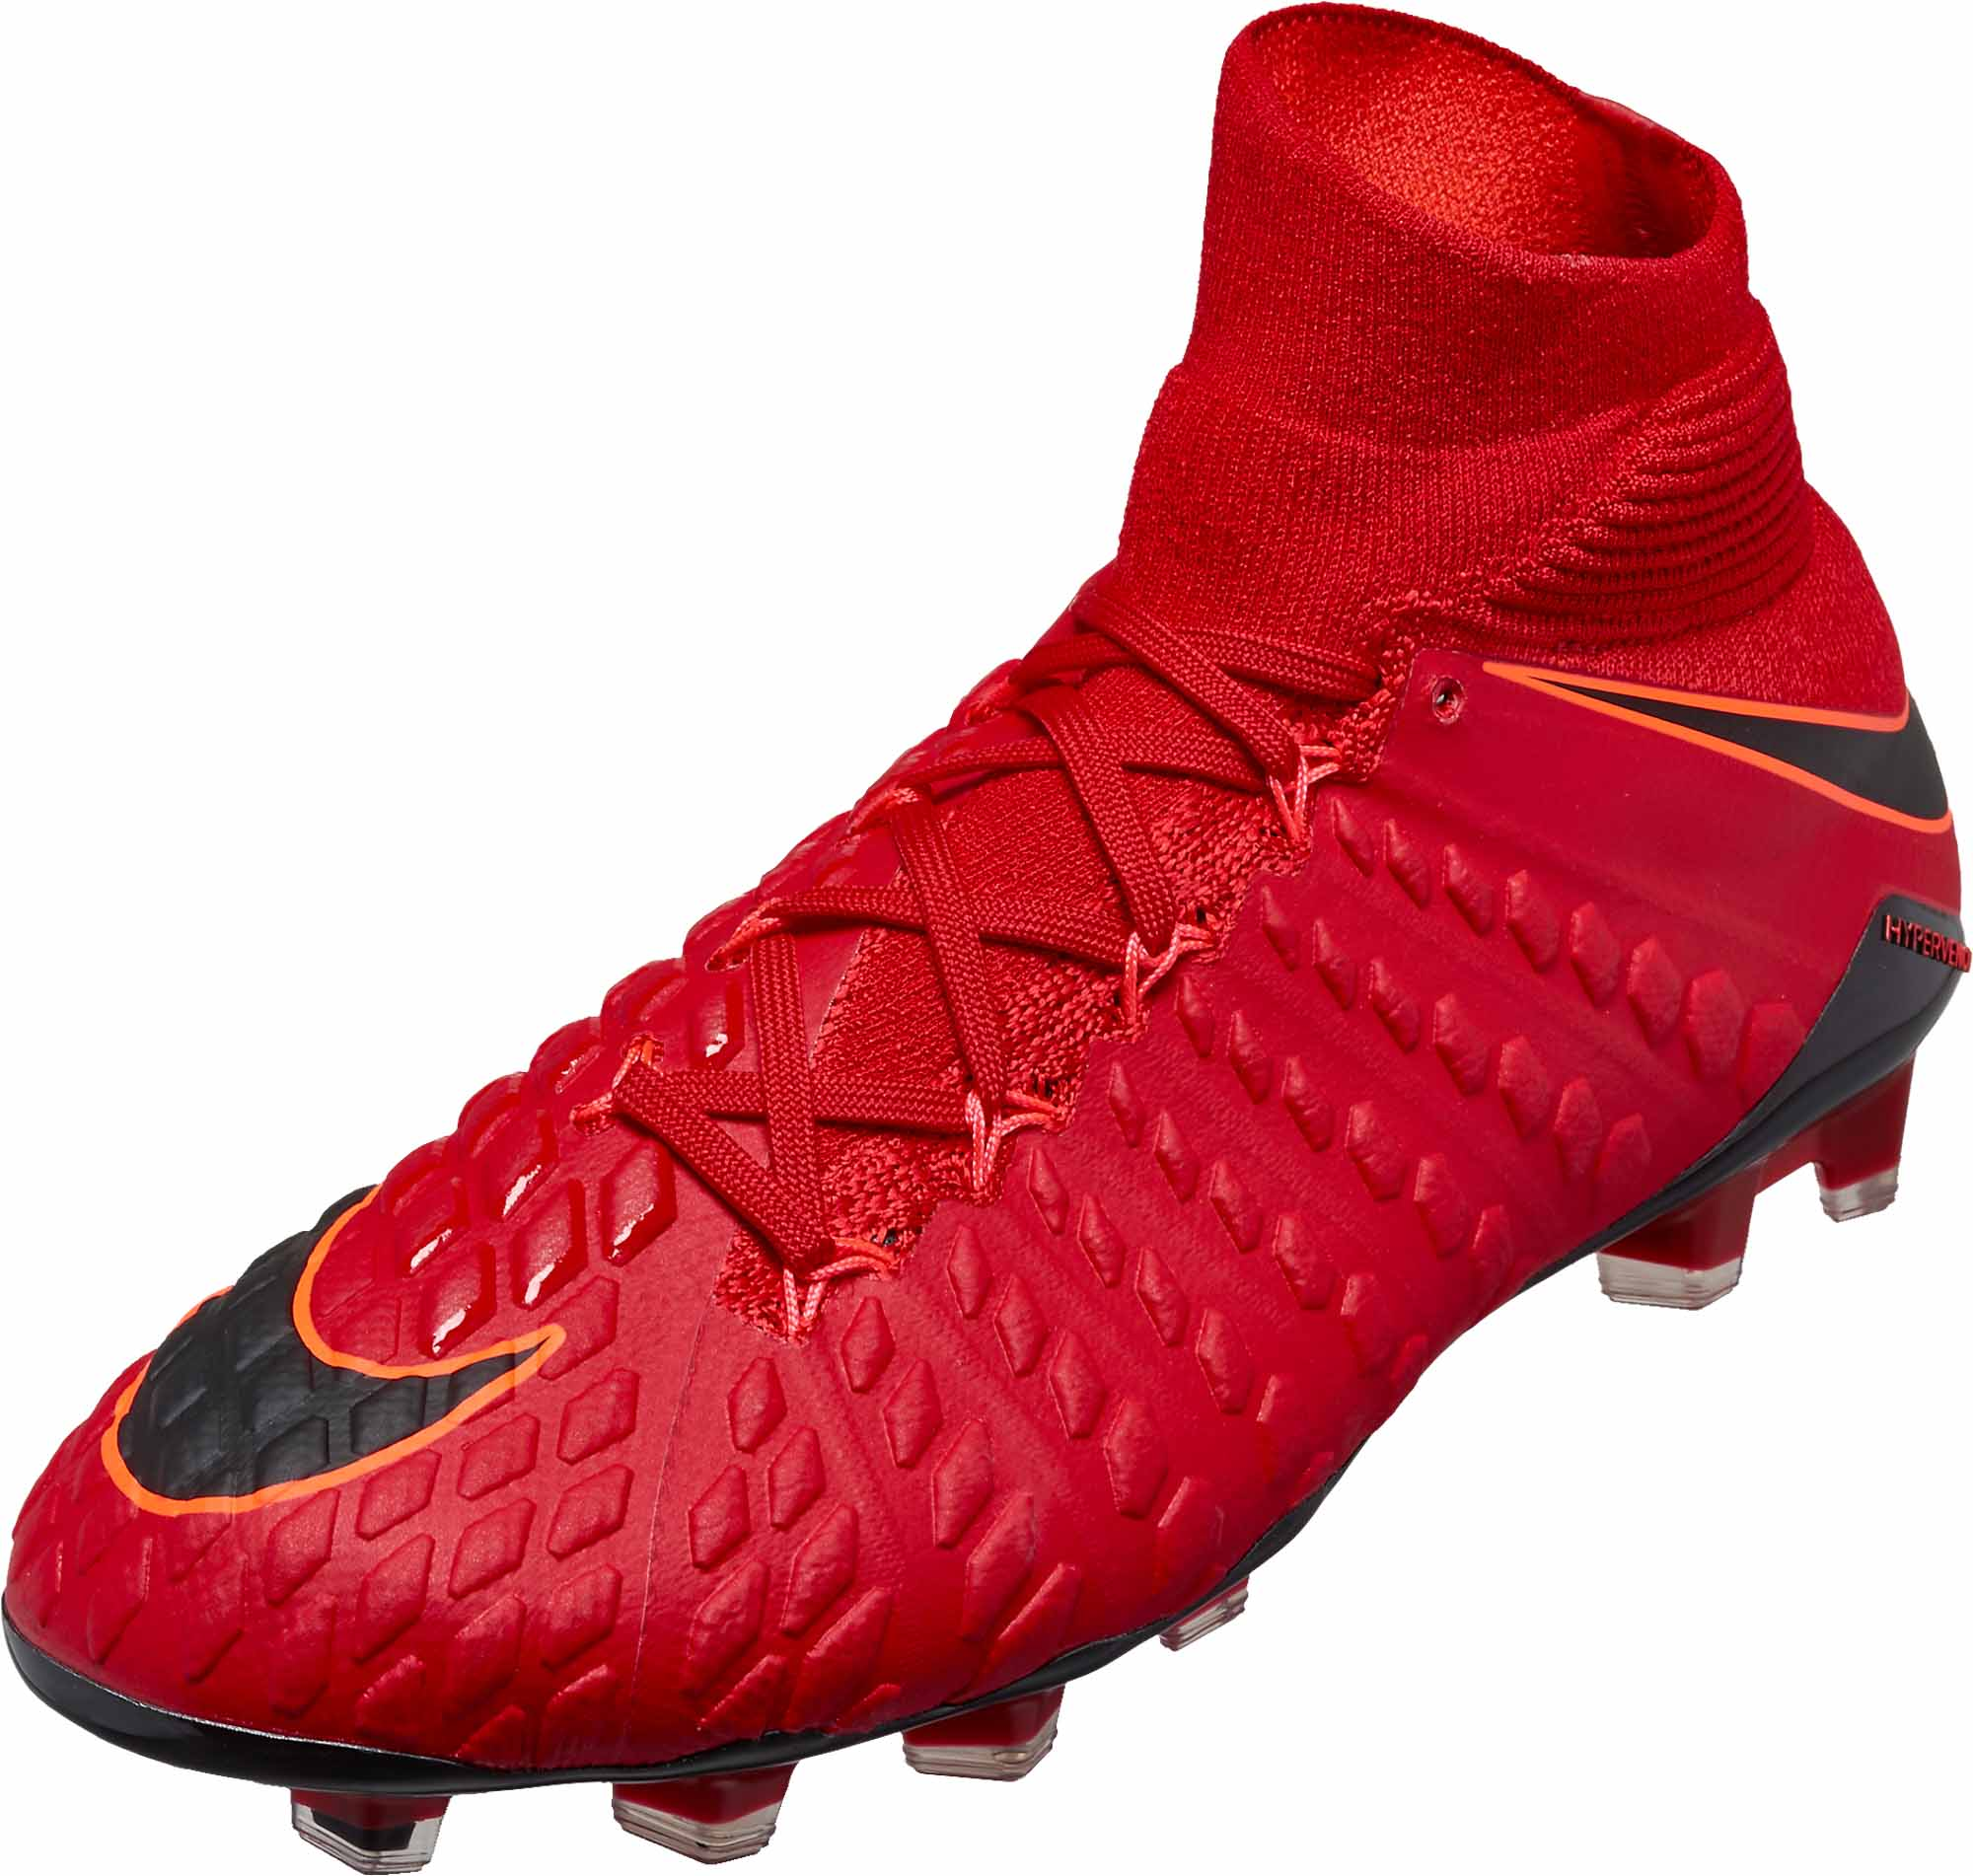 d11d97a7a01b Nike Hypervenom Phantom III DF FG - University Red   Black - Soccer ...